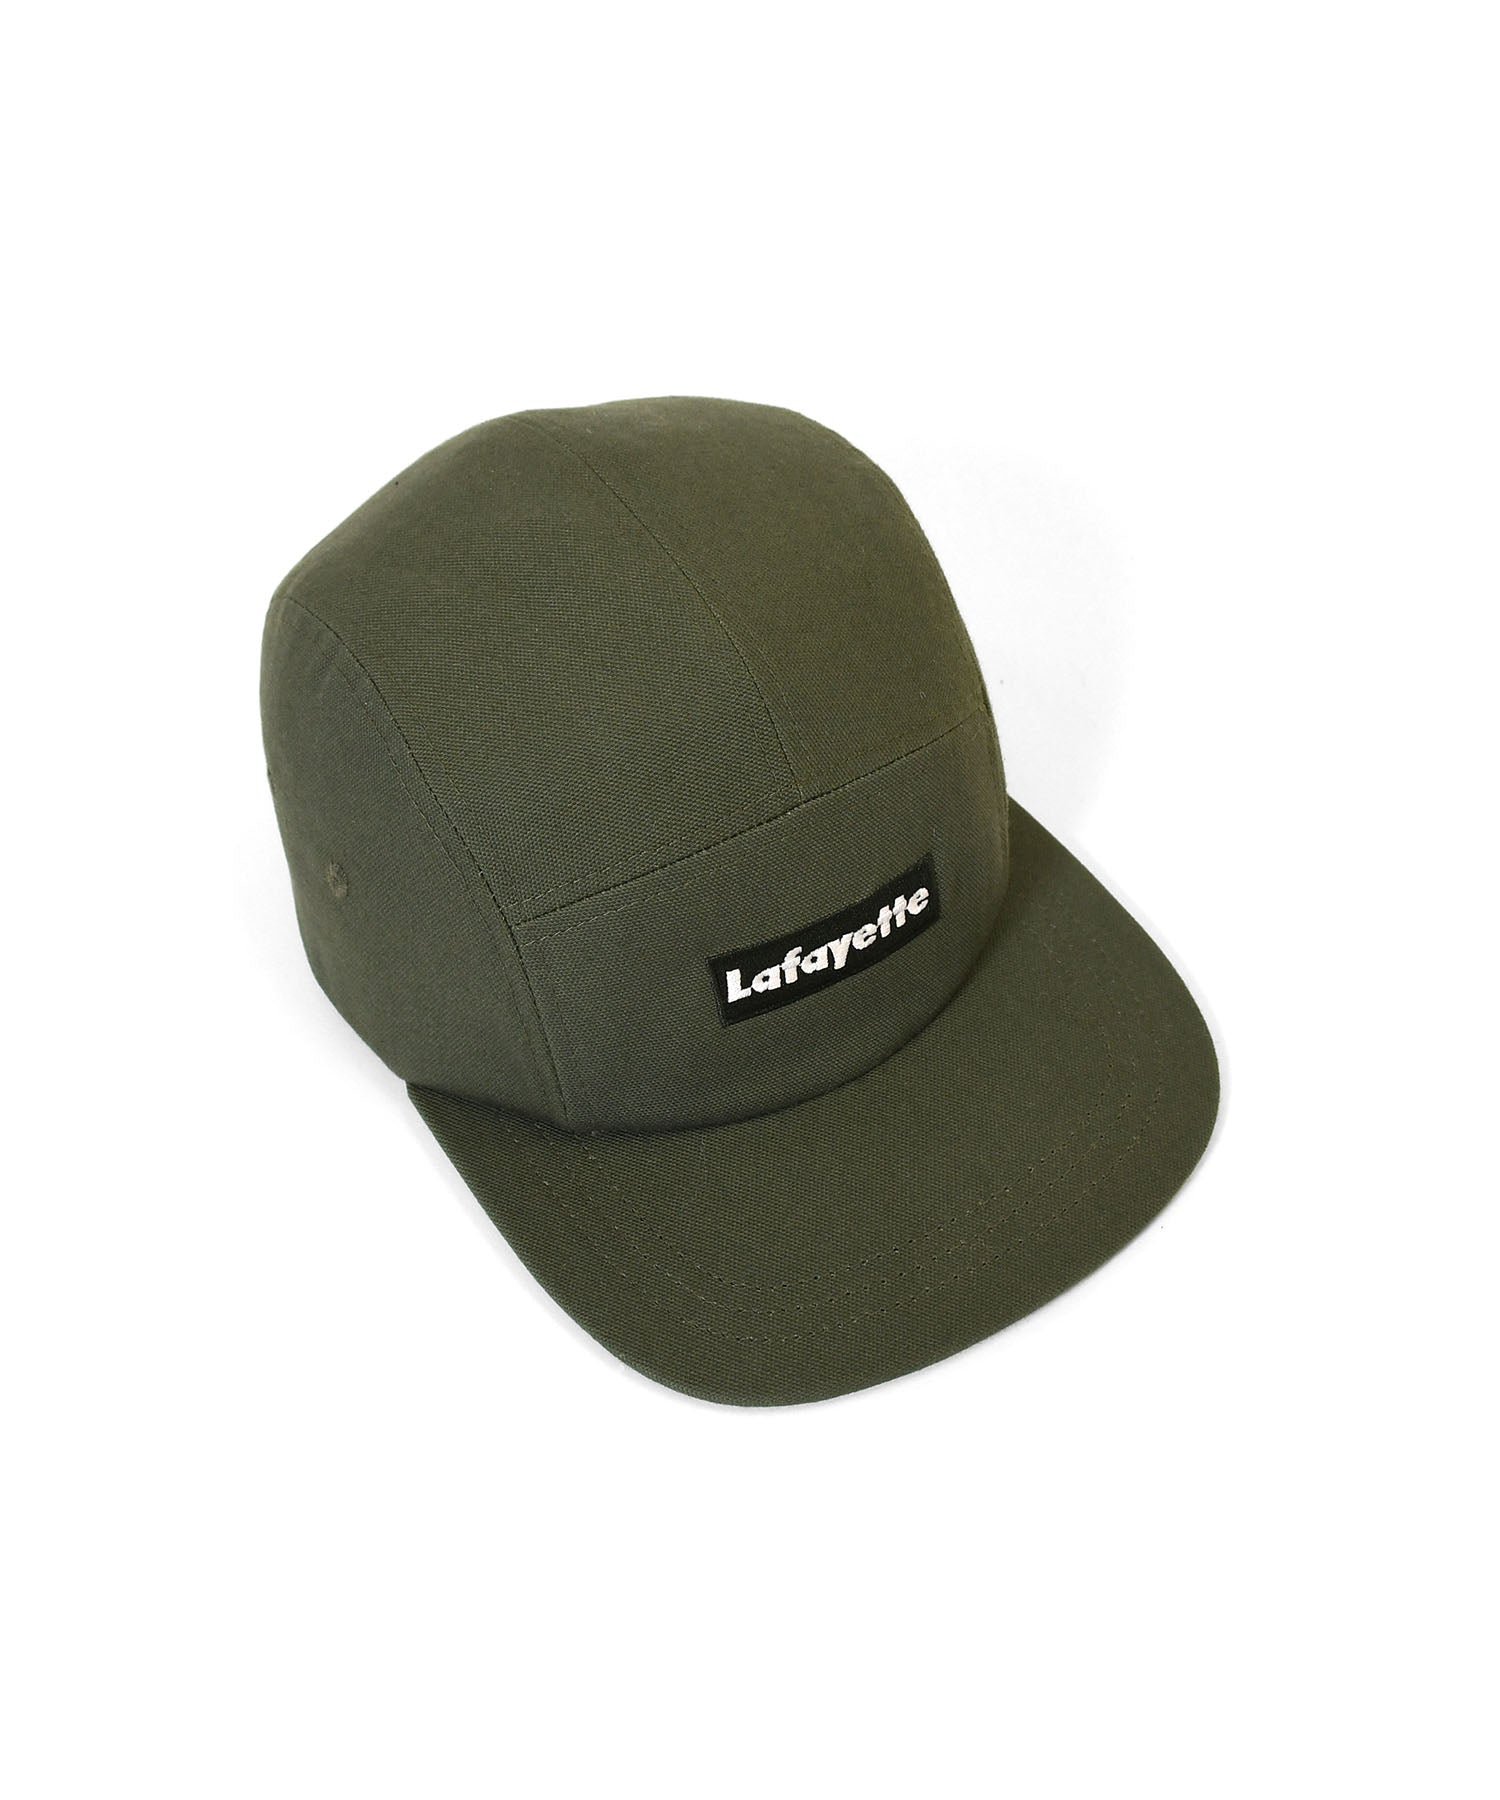 WORKERS SMALL LOGO DUCK CAMP CAP LA201404 GREEN